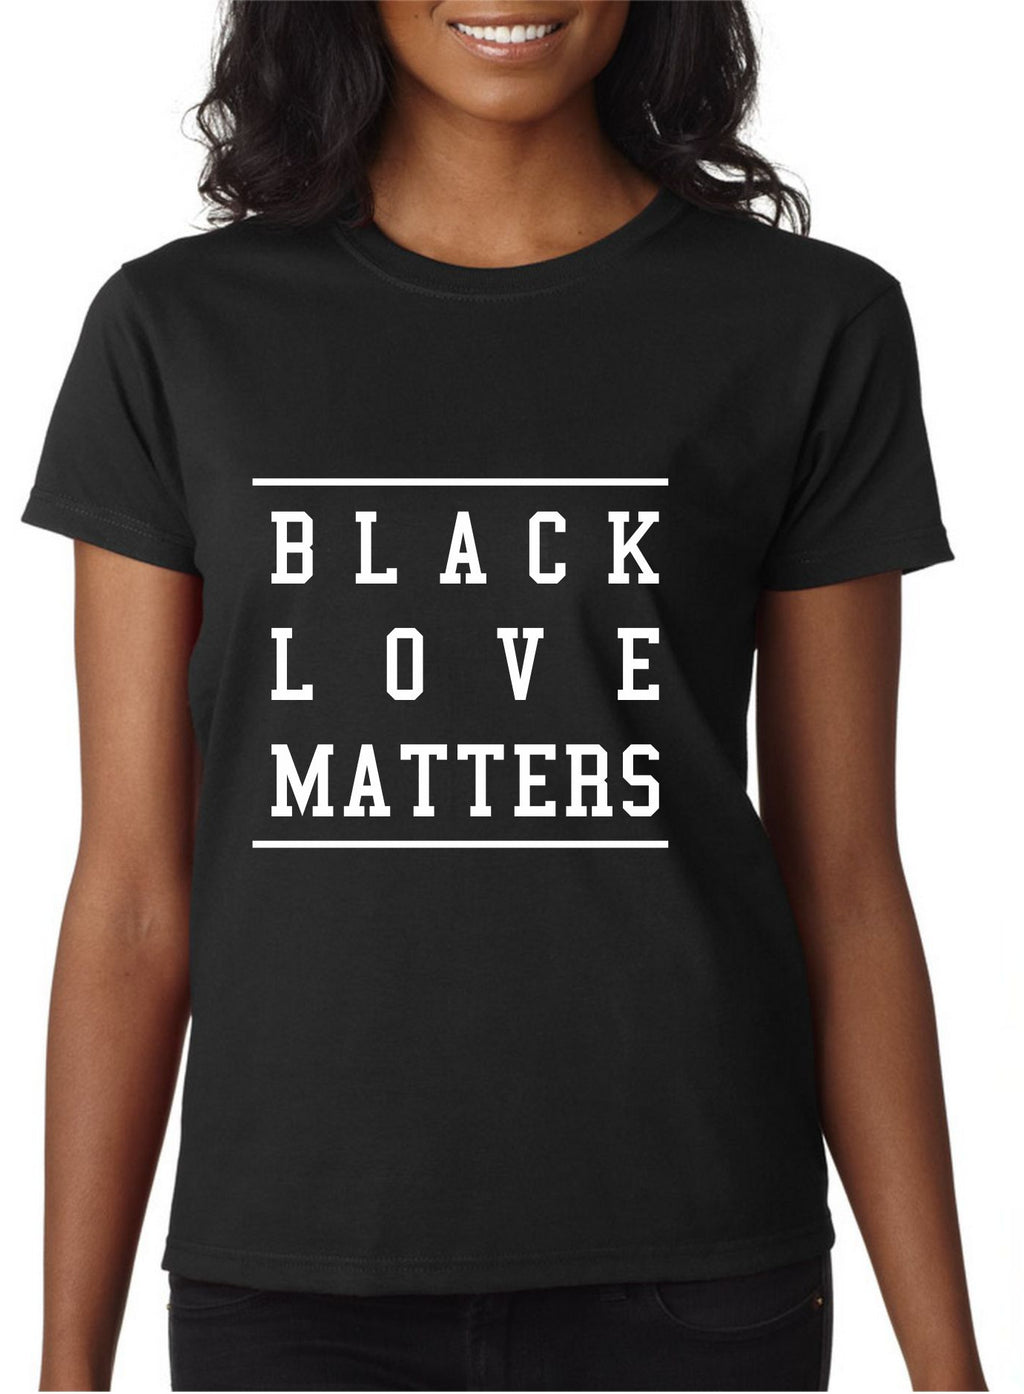 Black Love Matters (Unisex Relax Fit)